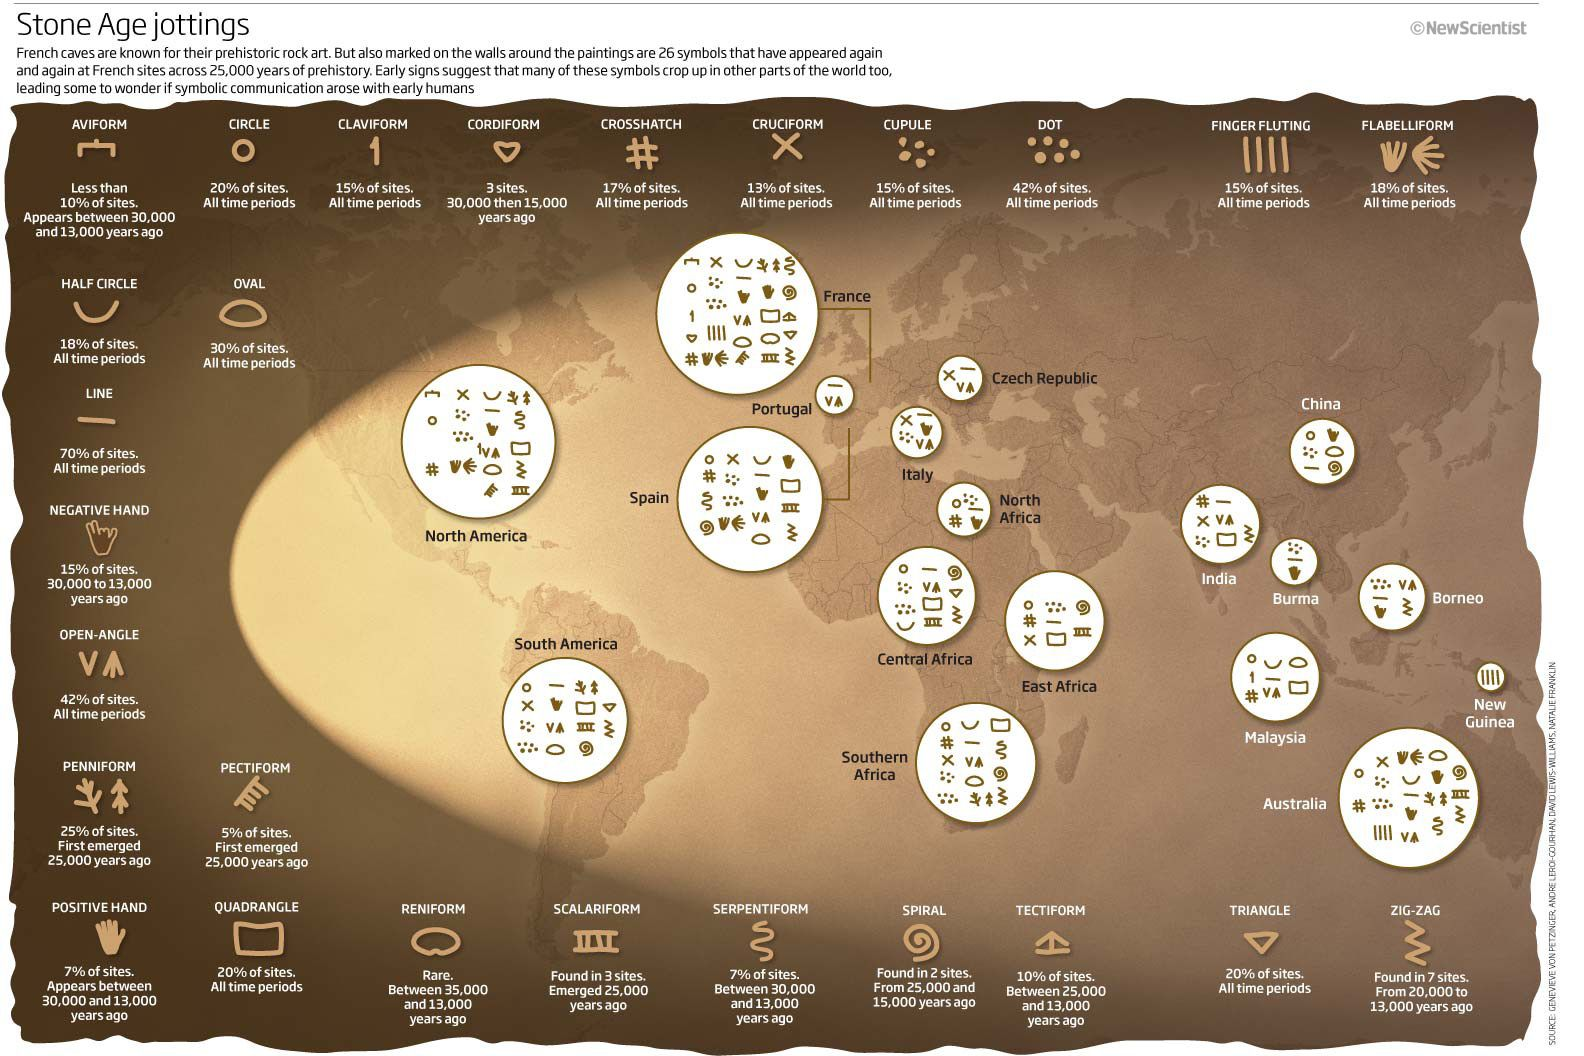 The old stone age prehistoric symbols and archaeology stone age jottings french caves are known for their prehistoric rock art many of these symbols crop up in other parts of the world too biocorpaavc Choice Image